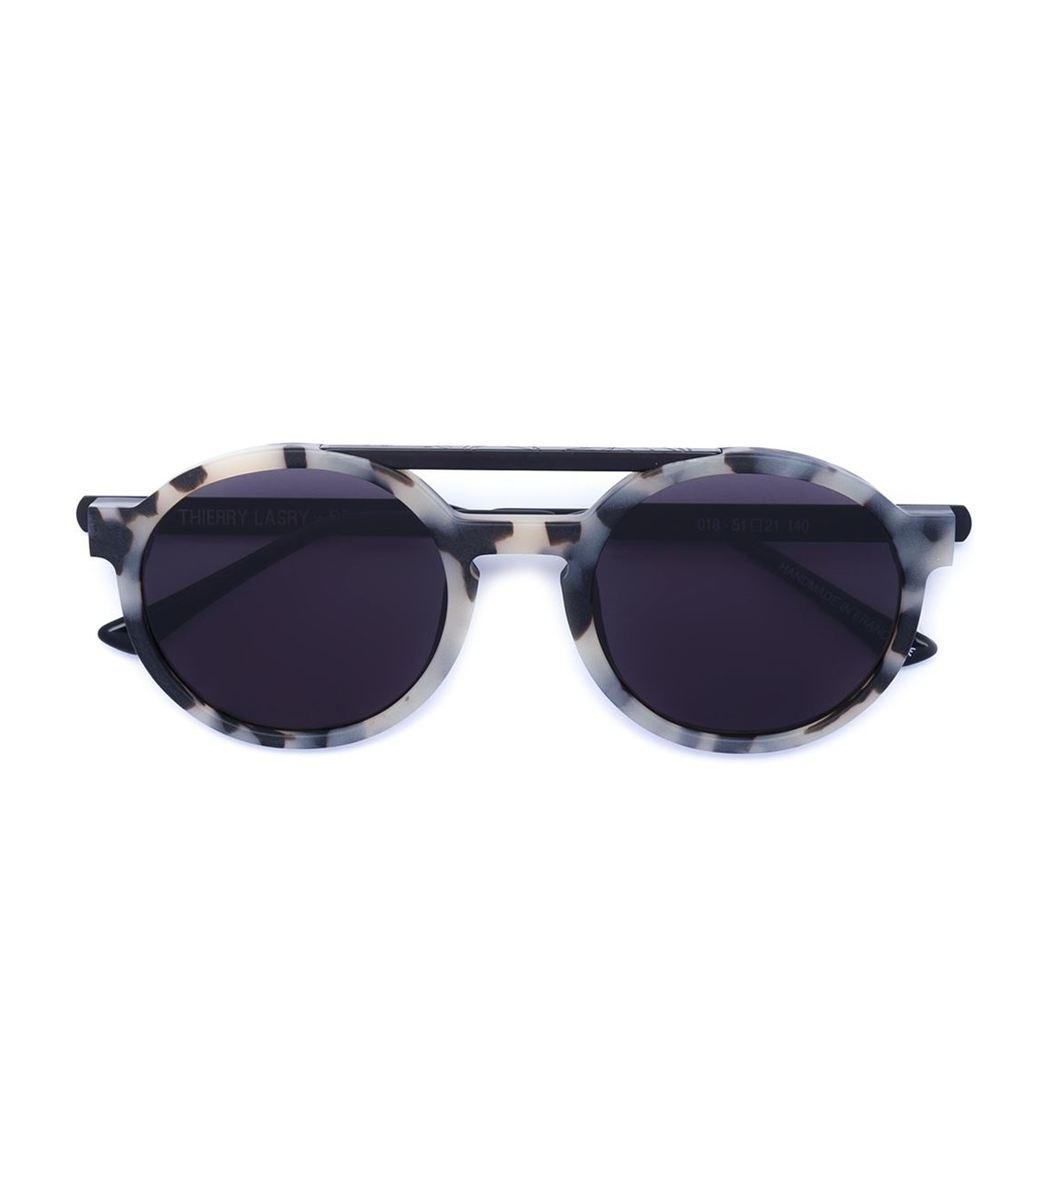 80467692b1 Lyst - Thierry Lasry   X Dr. Woo  Sunglasses in Gray